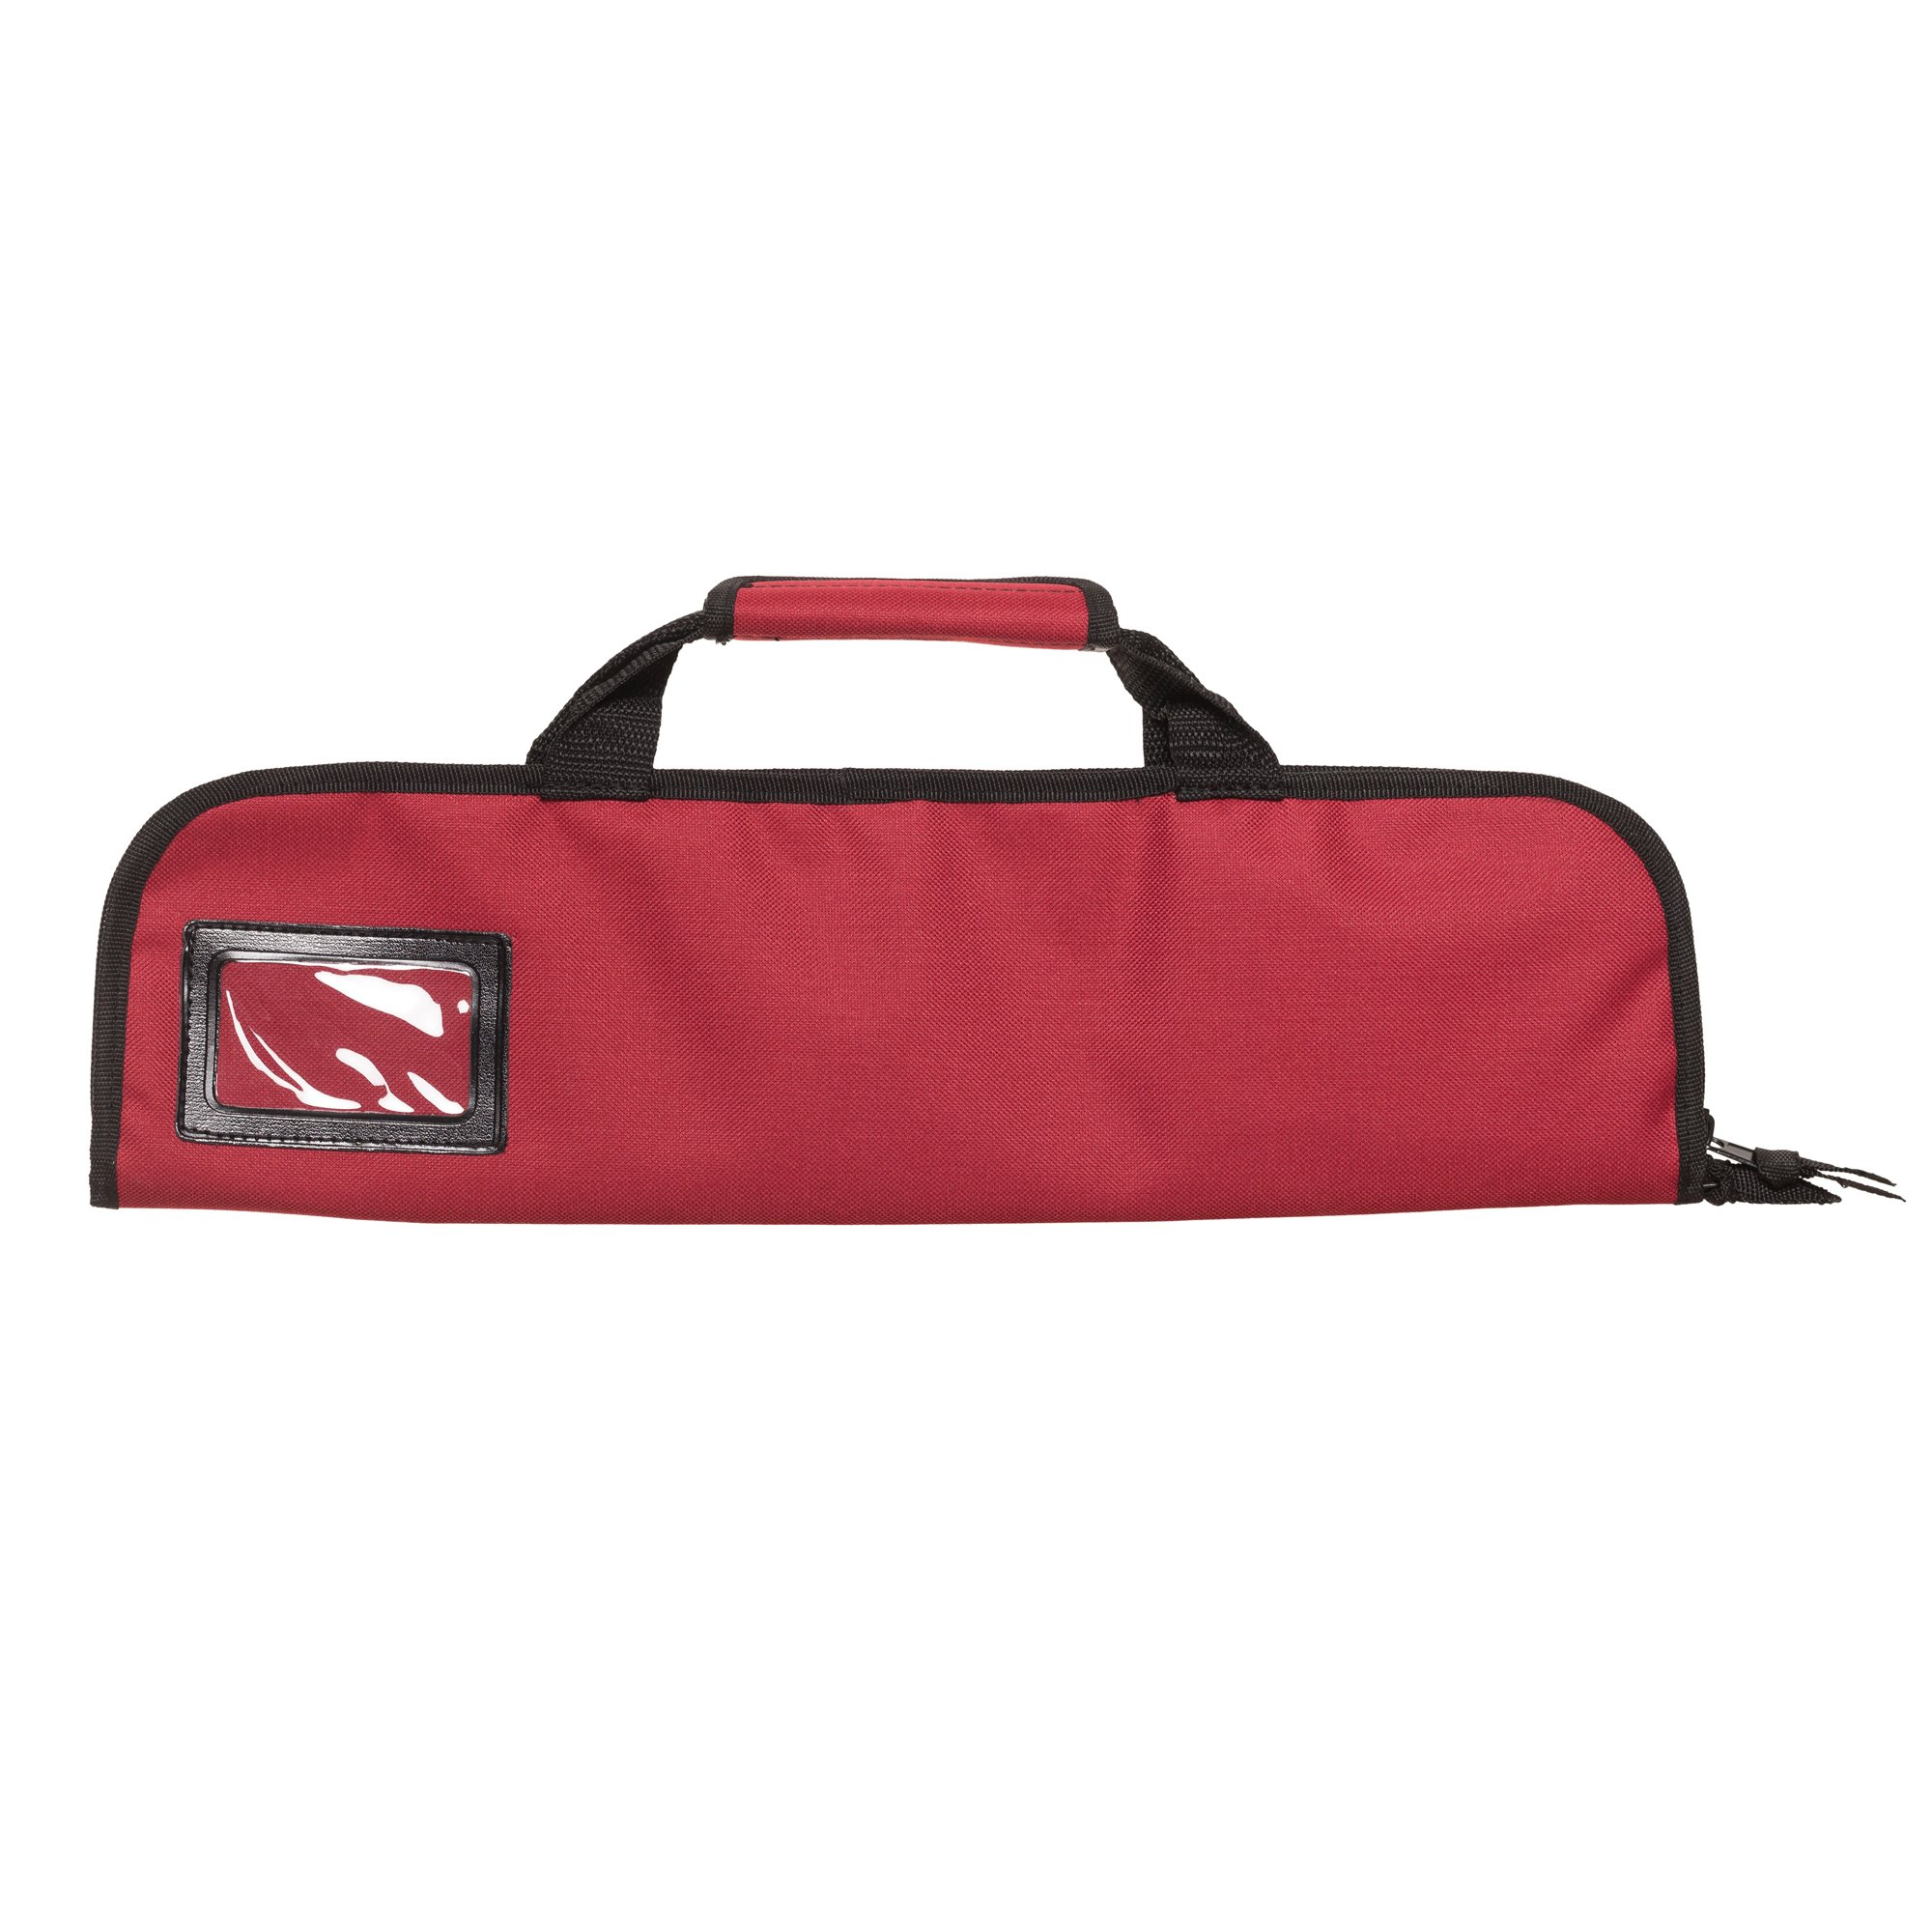 5 Pocket Padded Chef Knife Case Roll with 5 pc. Edge Guards (Red 5 Pocket bag w/5pc. Black Edge guards) by Ergo Chef (Image #3)